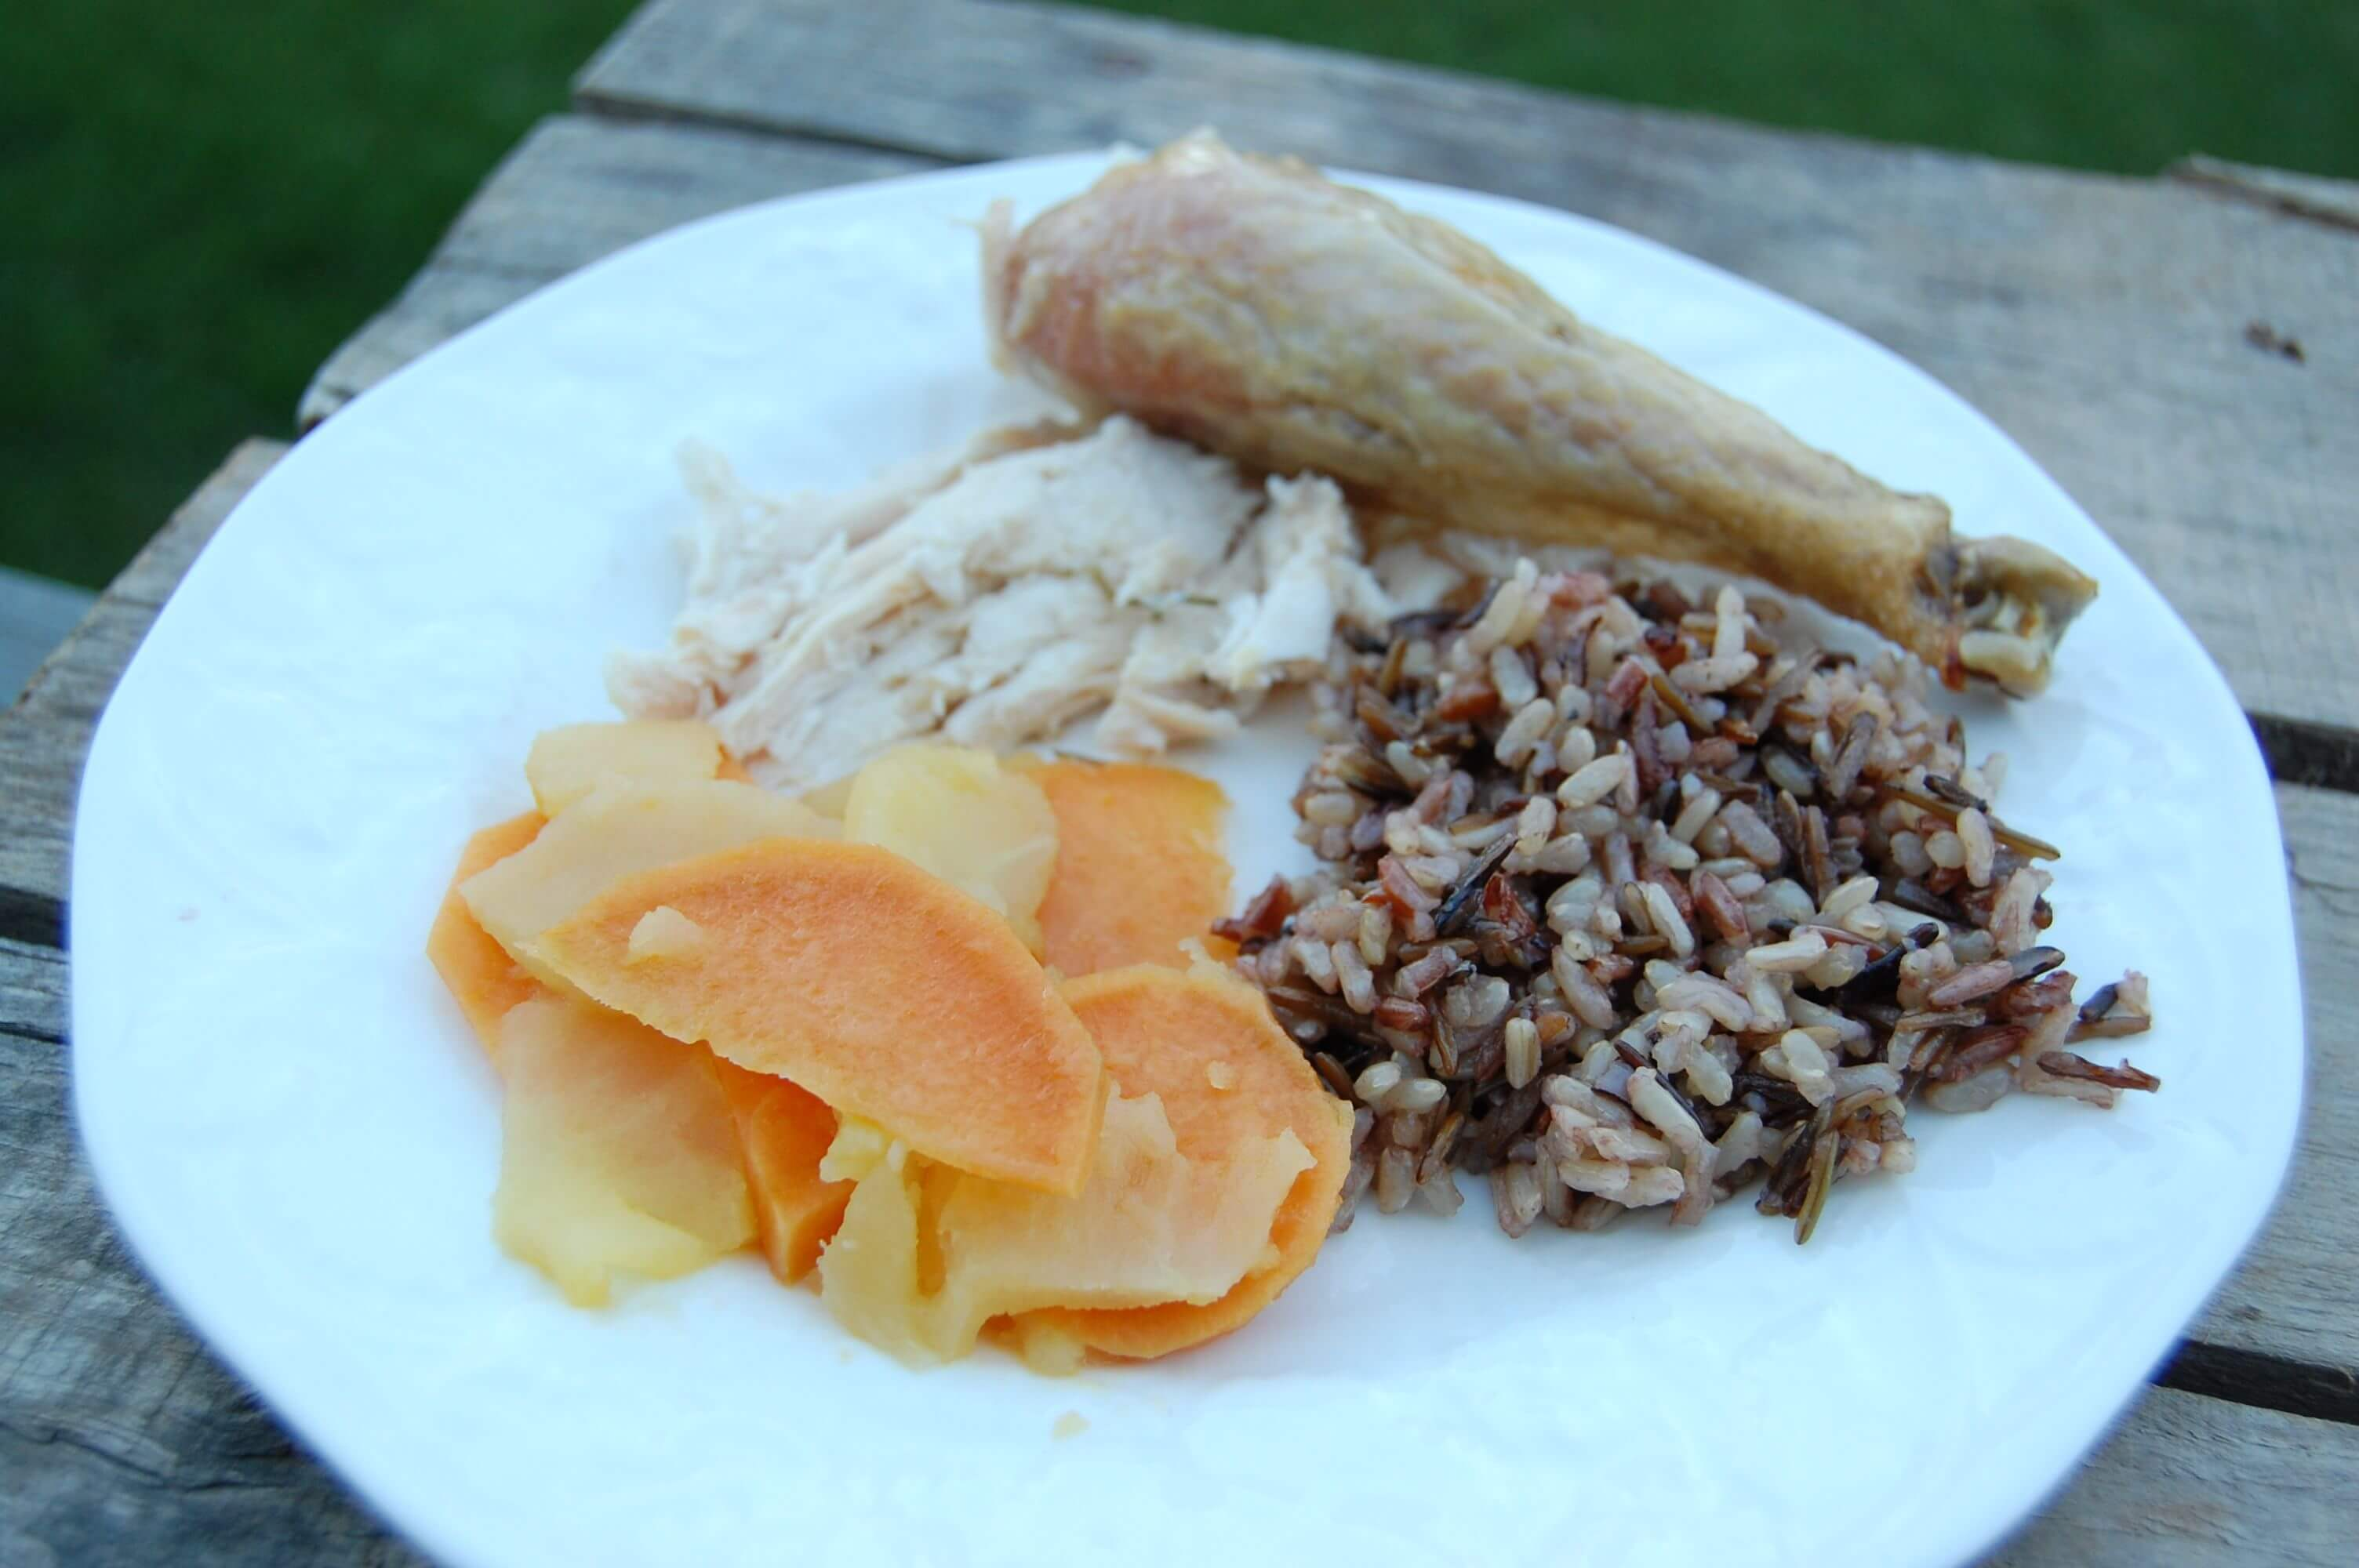 A plate of roasted chicken, wild rice, and sautéed sweet potatoes/apples.